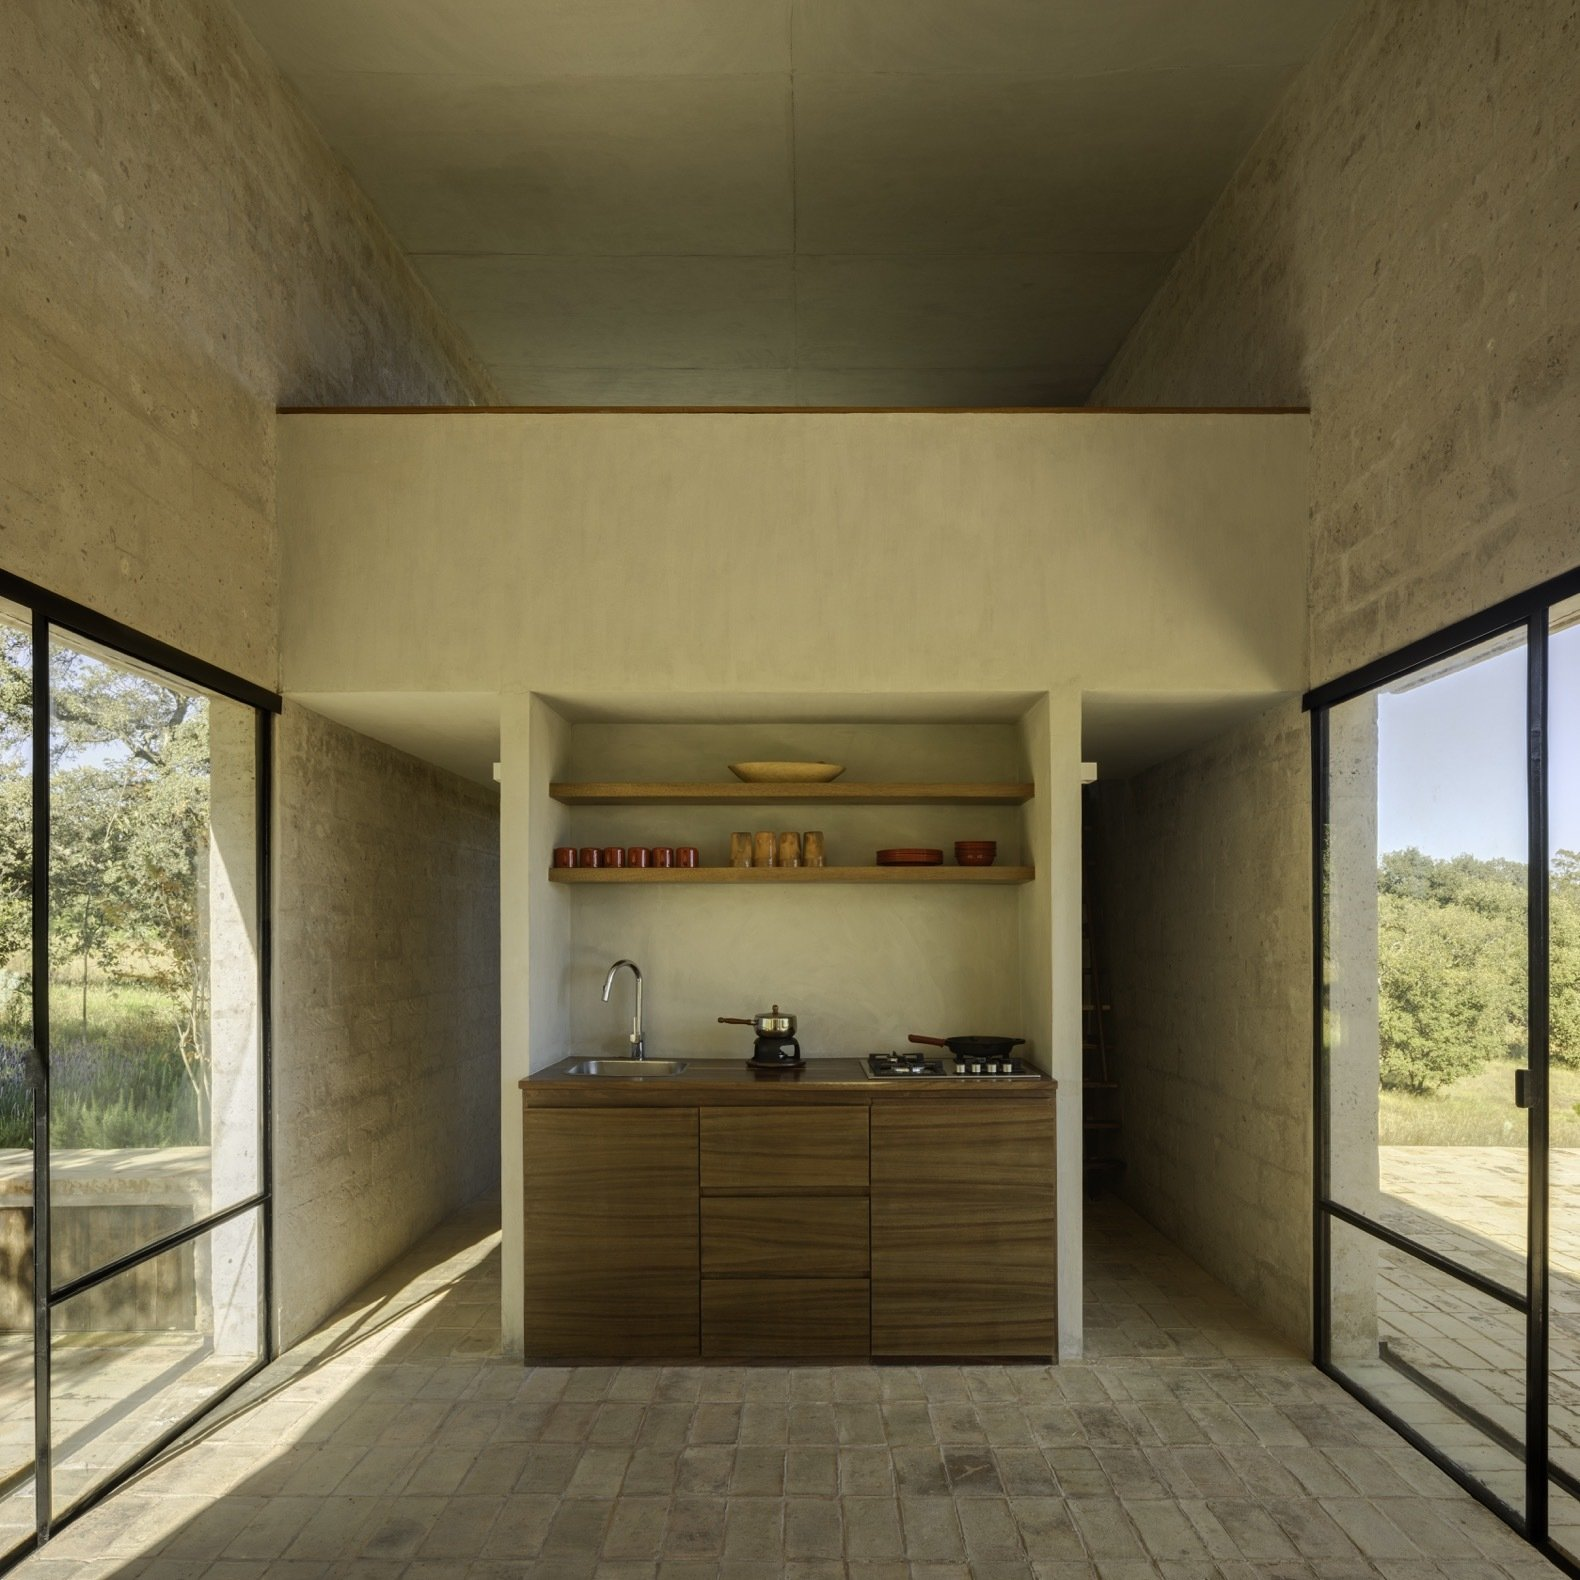 Aculco holiday home kitchen